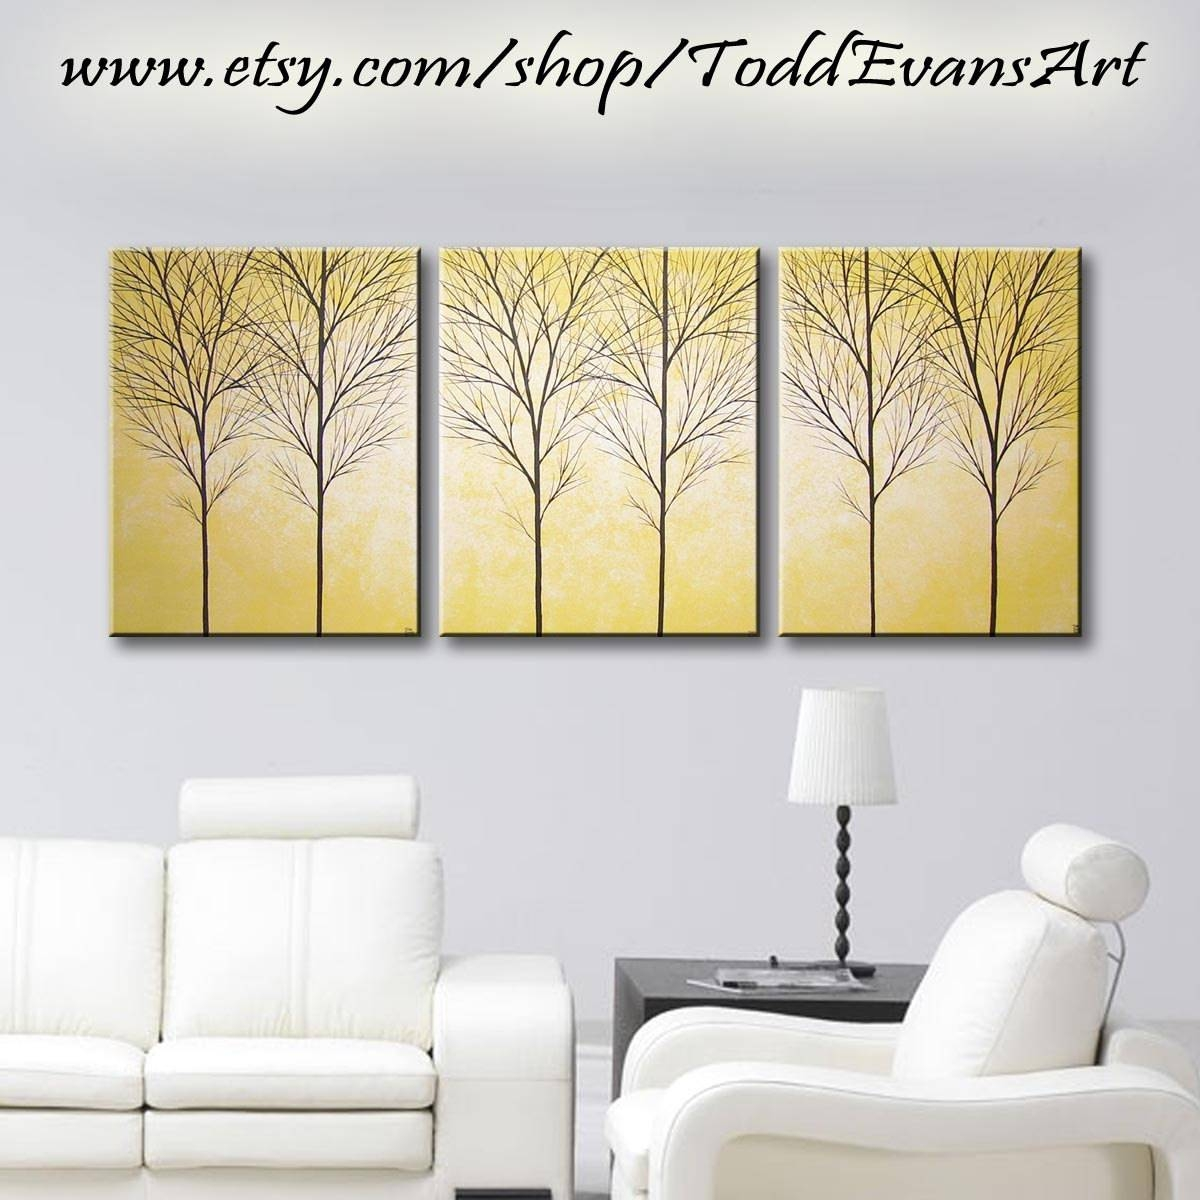 Yellow Painting 3 Piece Wall Art Original Paintings Bedroom With Latest Large Yellow Wall Art (View 5 of 20)